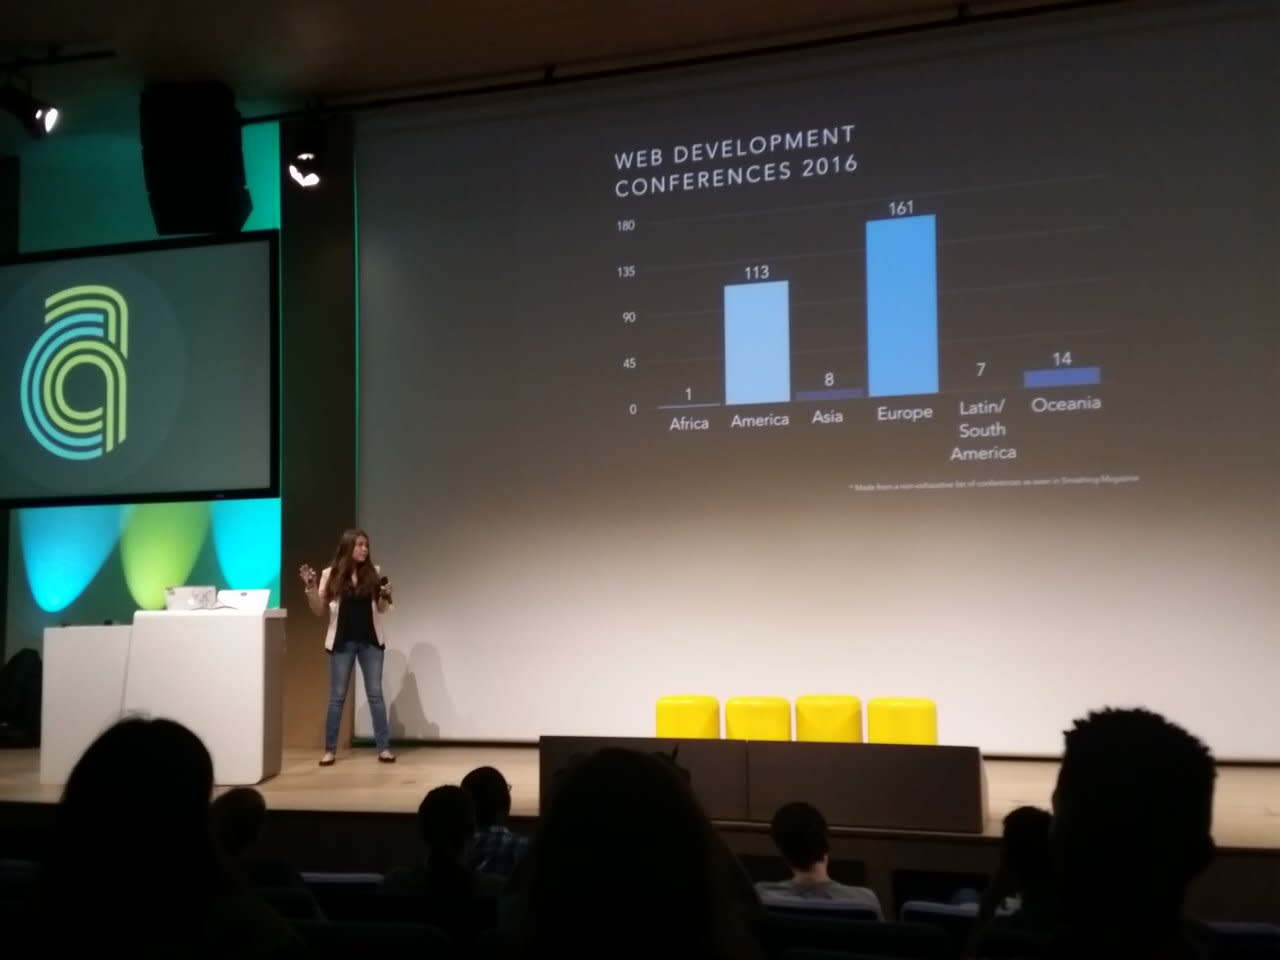 Web development conferences 2016 (statistics)